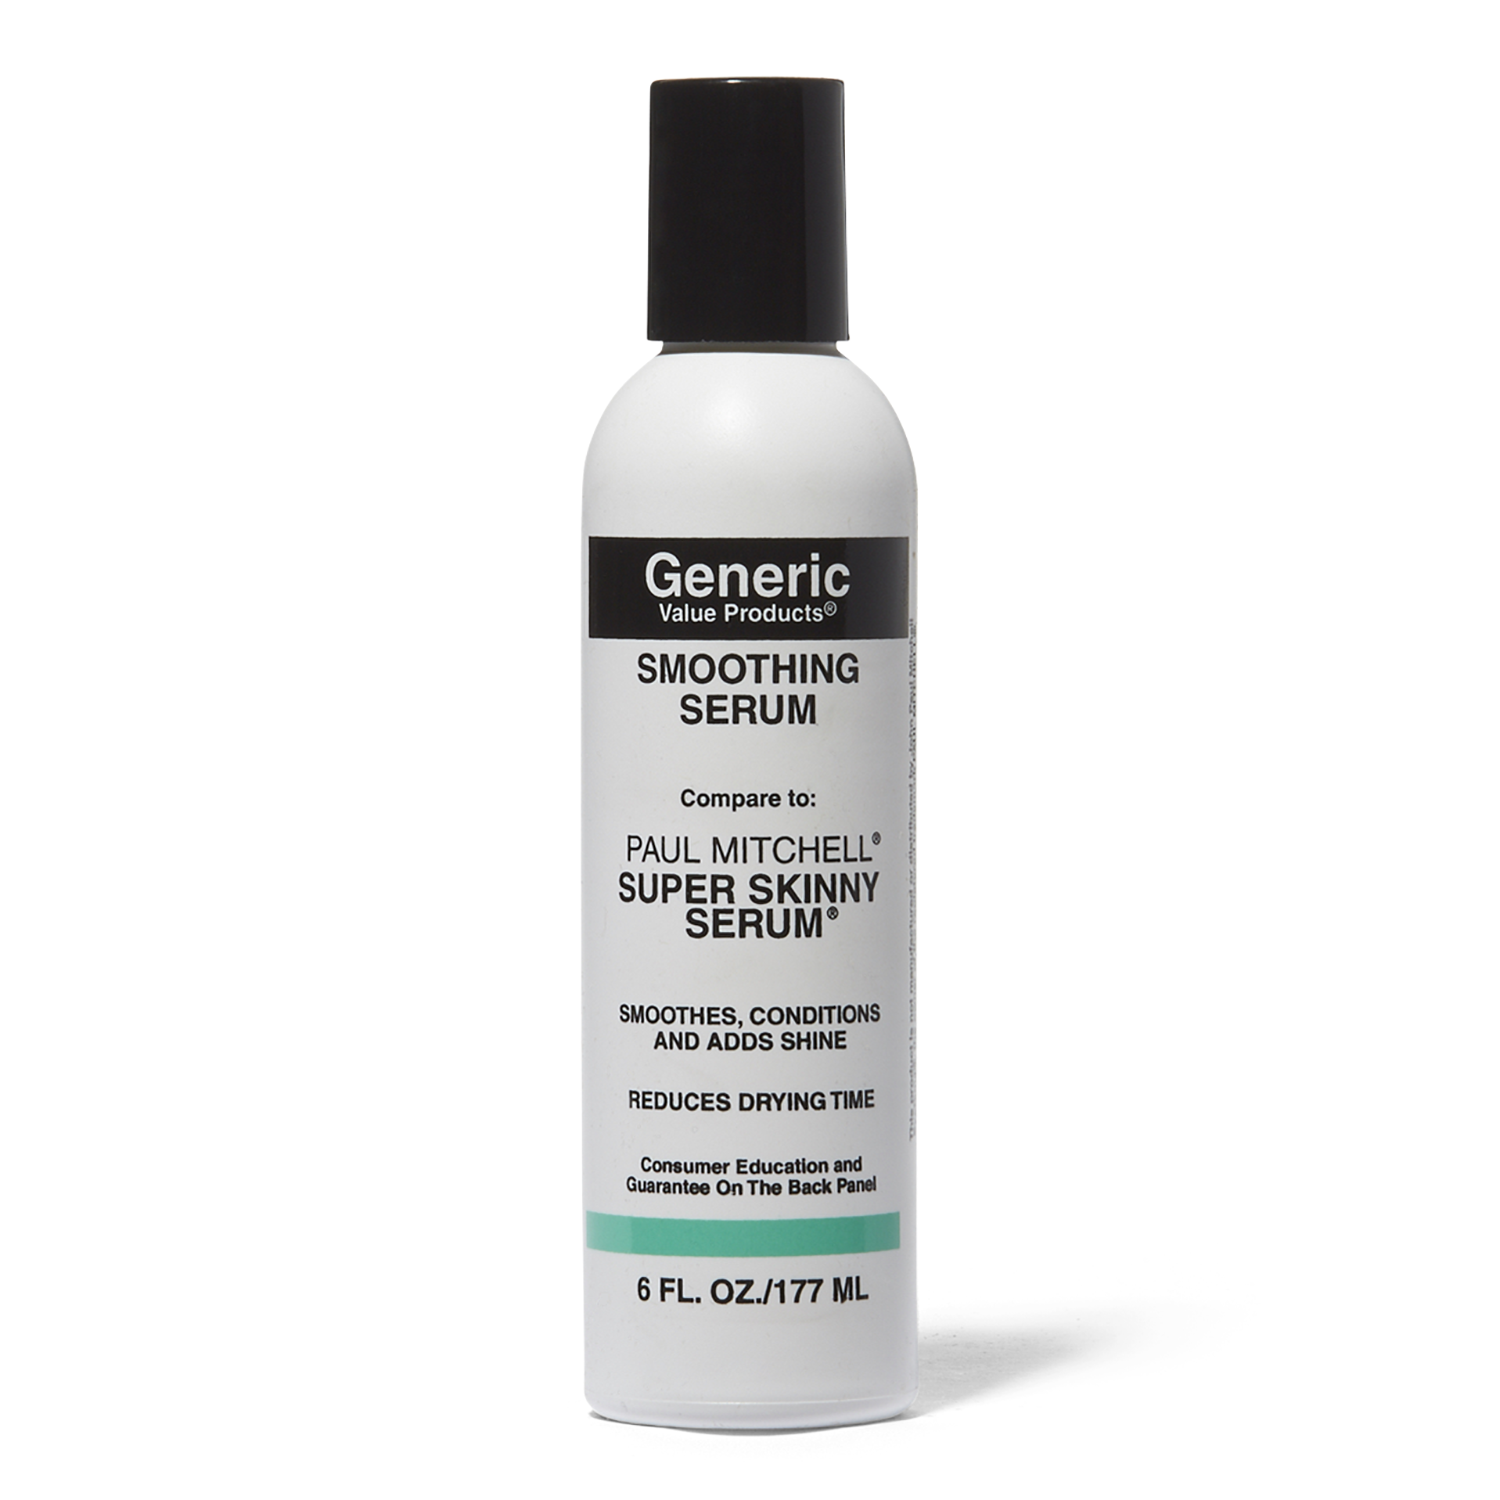 Sally Beauty coupon: Generic Value Products Smoothing Serum Paul Mitchell Super Skinny Serum | 6 oz. | Sally Beauty